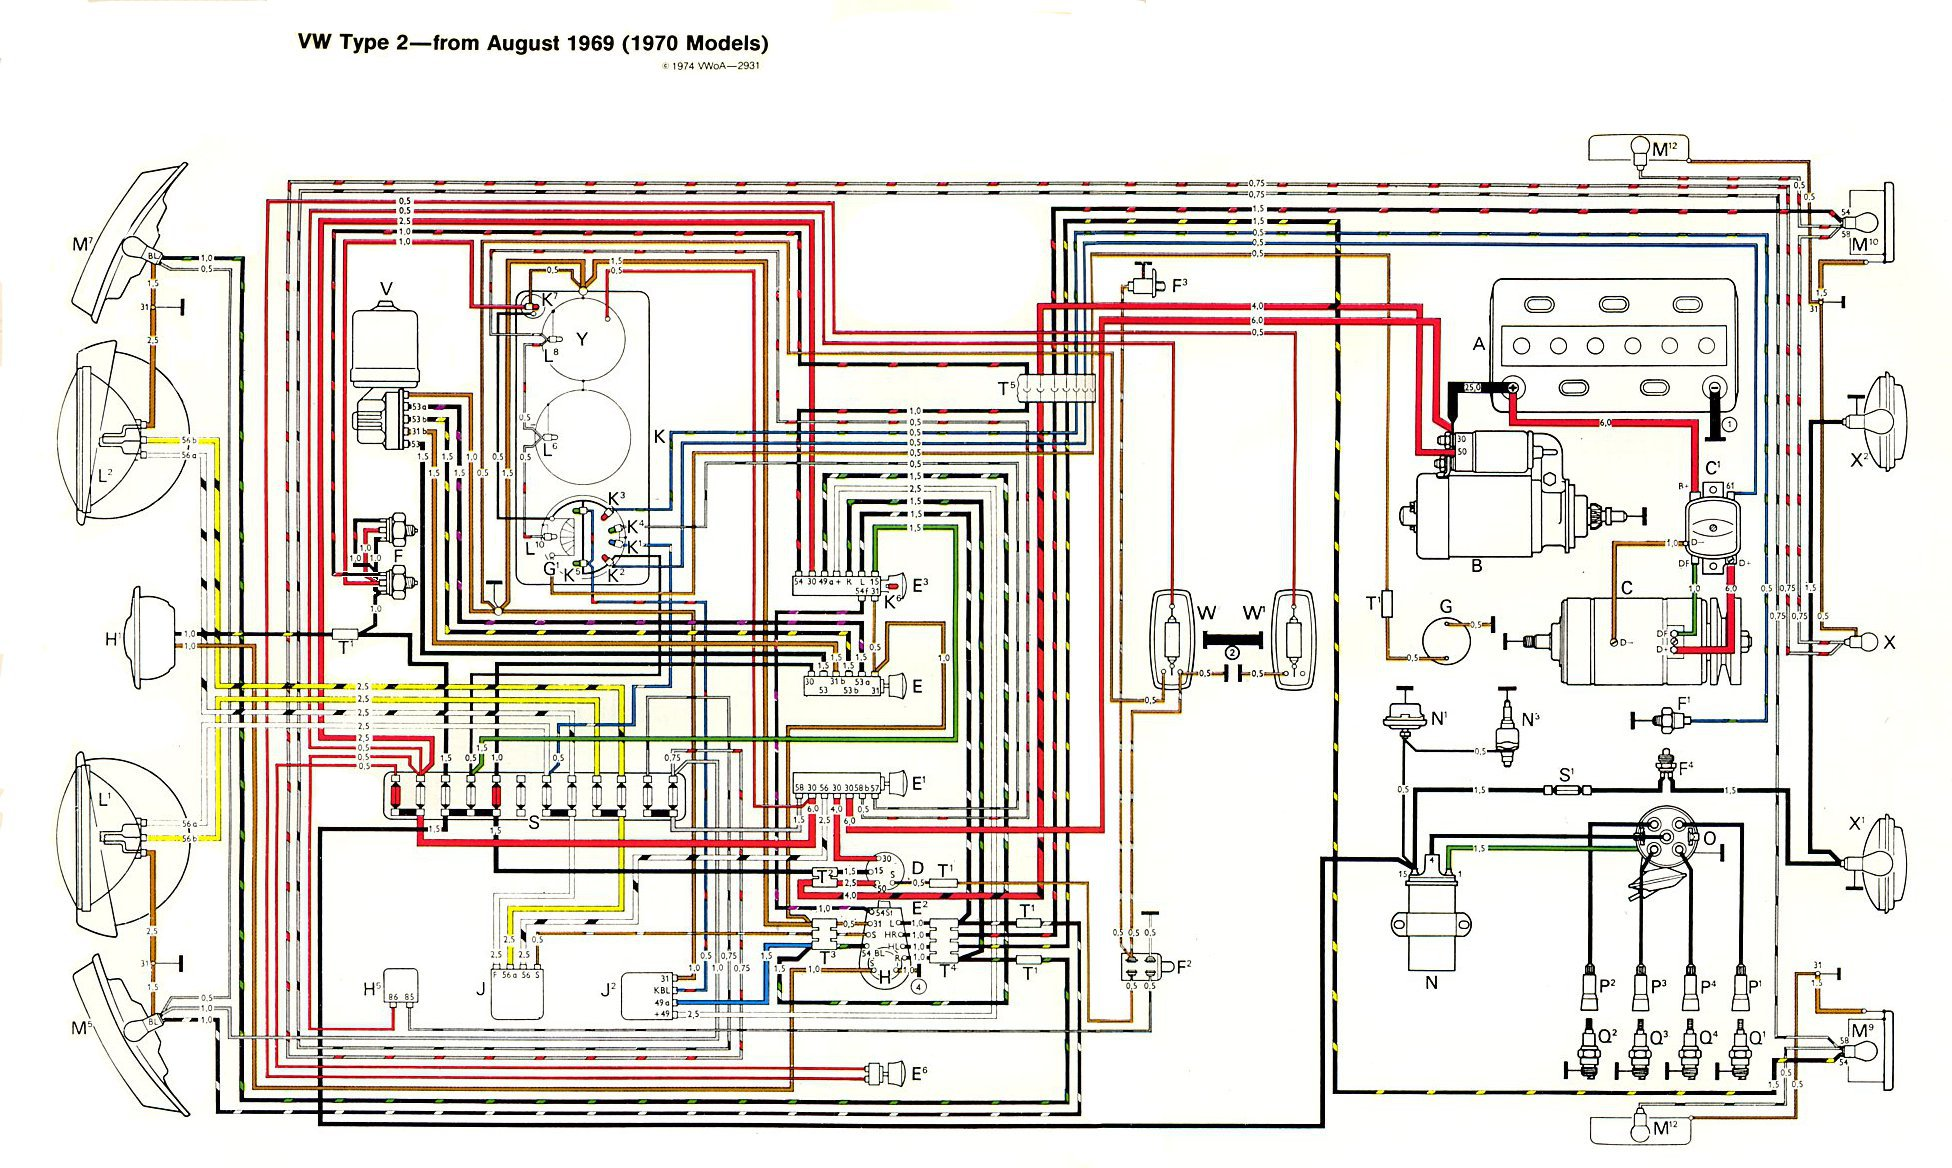 baybus_70 jeepster wiring diagram jeepster service manual pdf \u2022 free wiring 1975 porsche 911 wiring diagram at creativeand.co